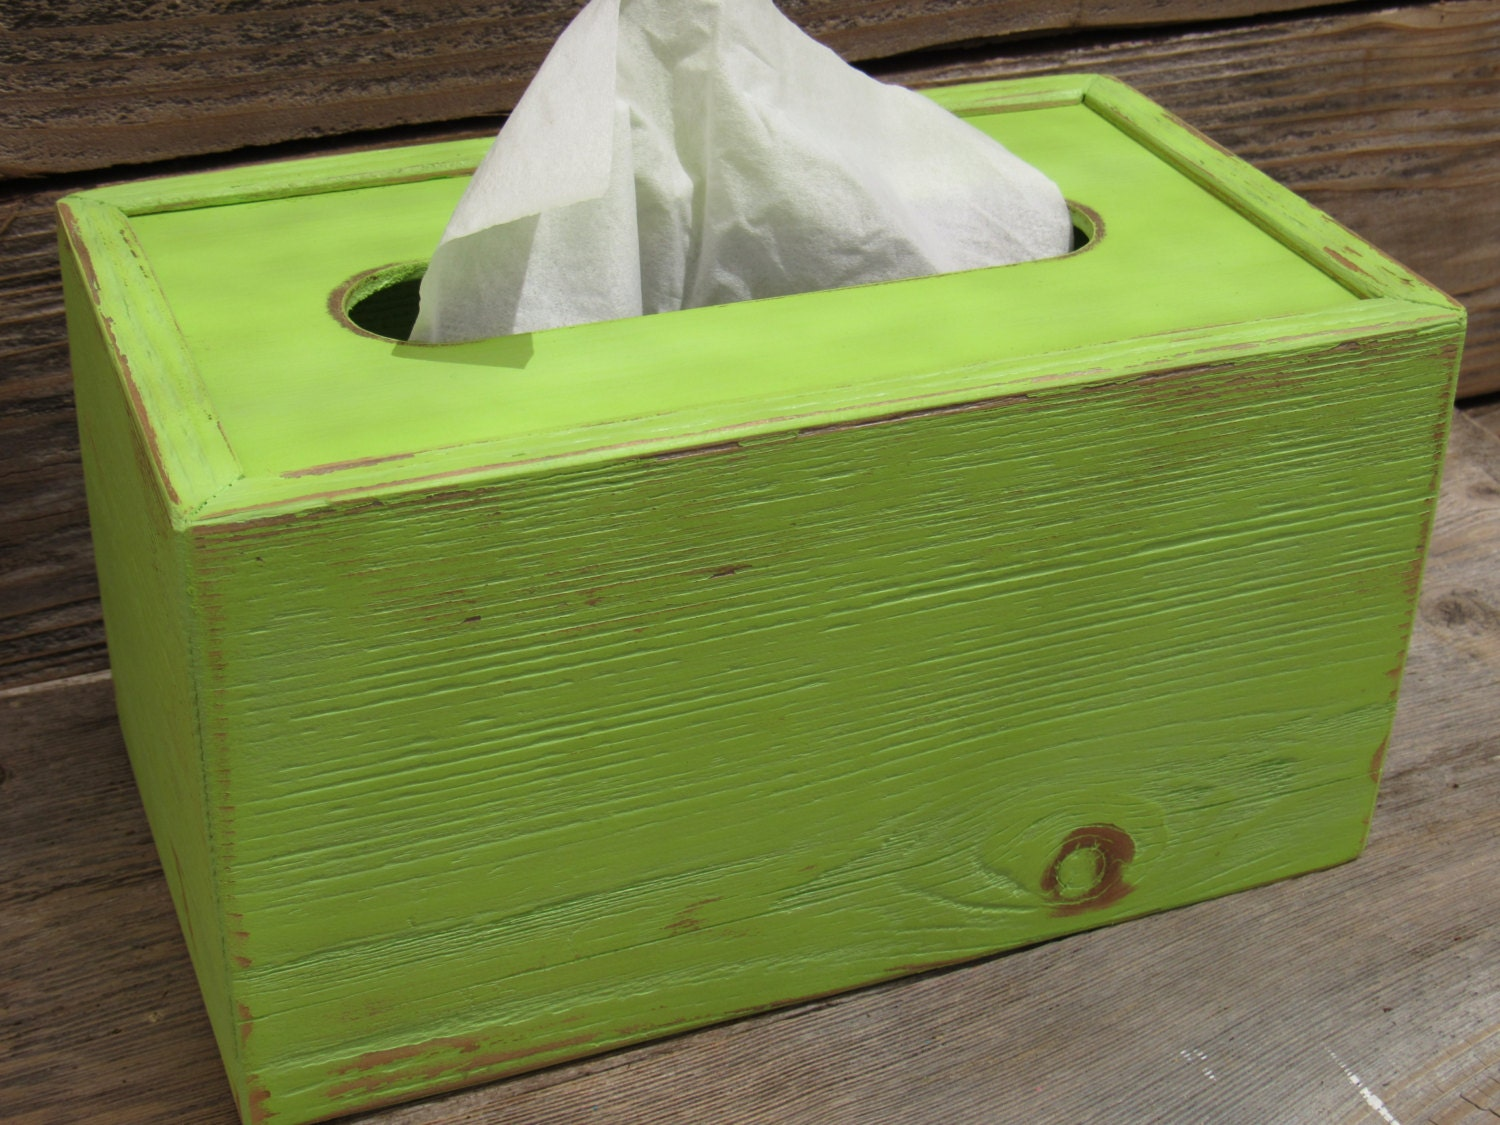 Tissue Box Cover Gifts Under 25 Dollars Gifr For Her Handmade